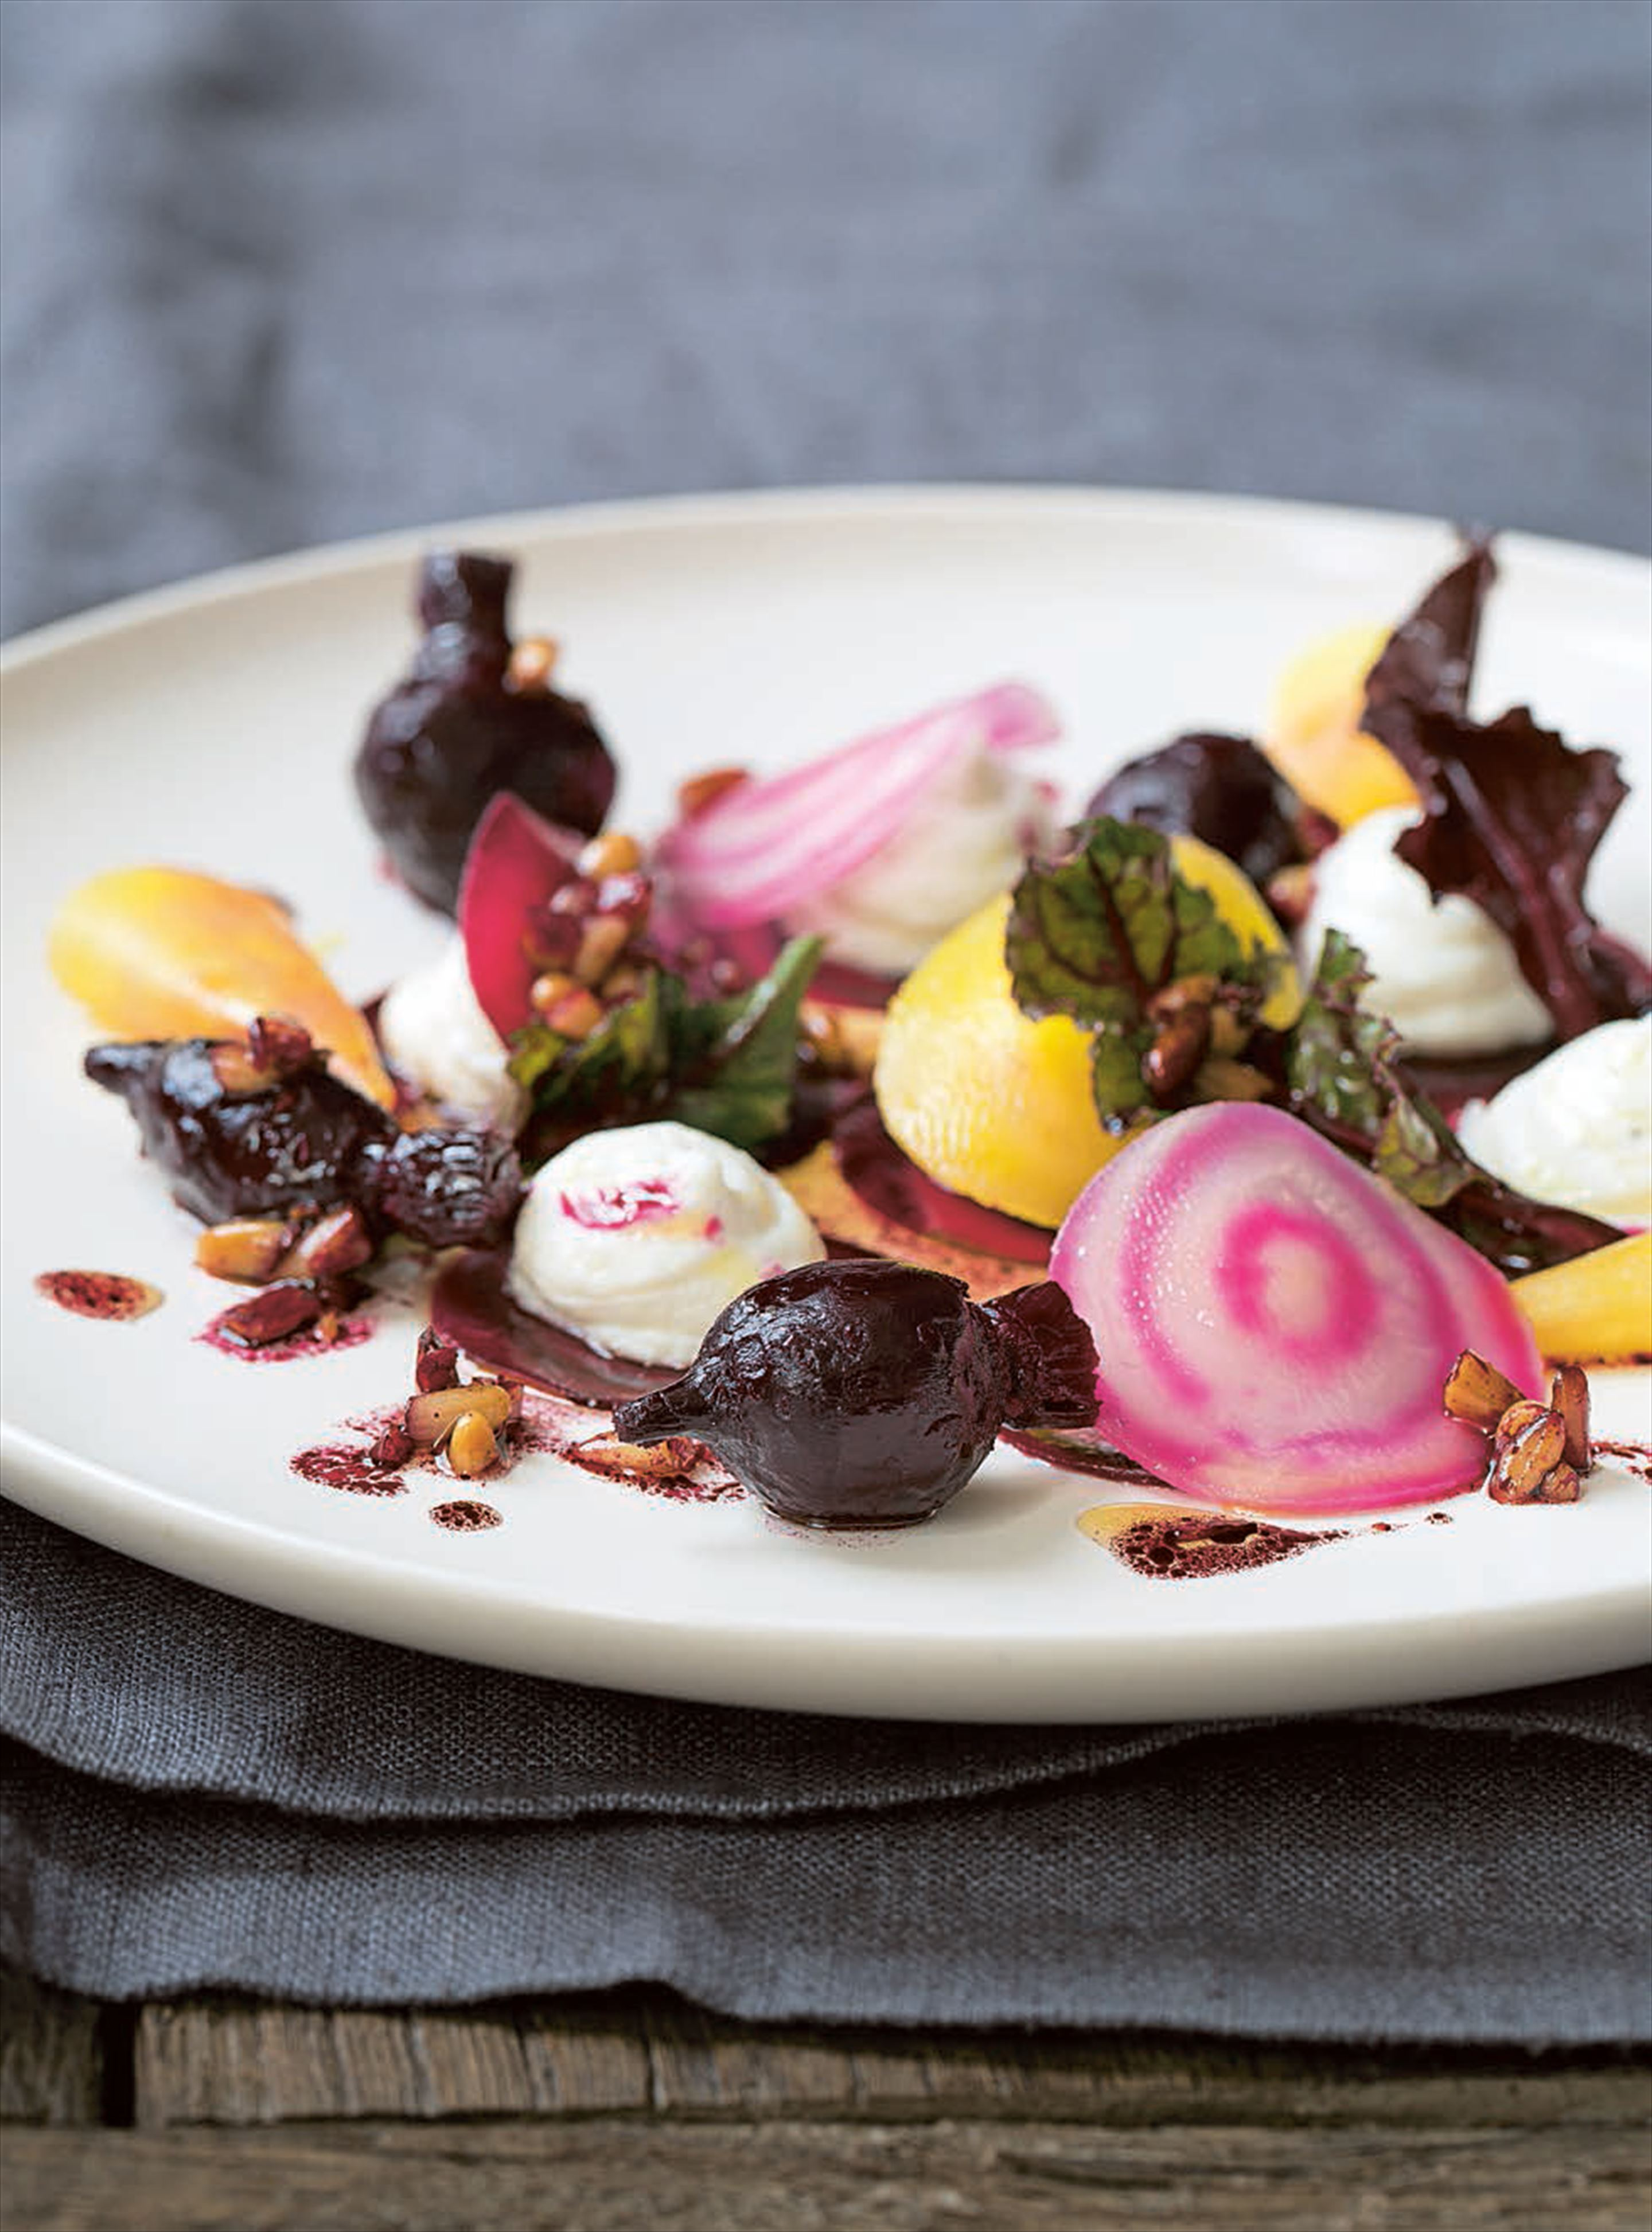 Mixed beetroot salad with goat's cheese mousse and pine nut dressing